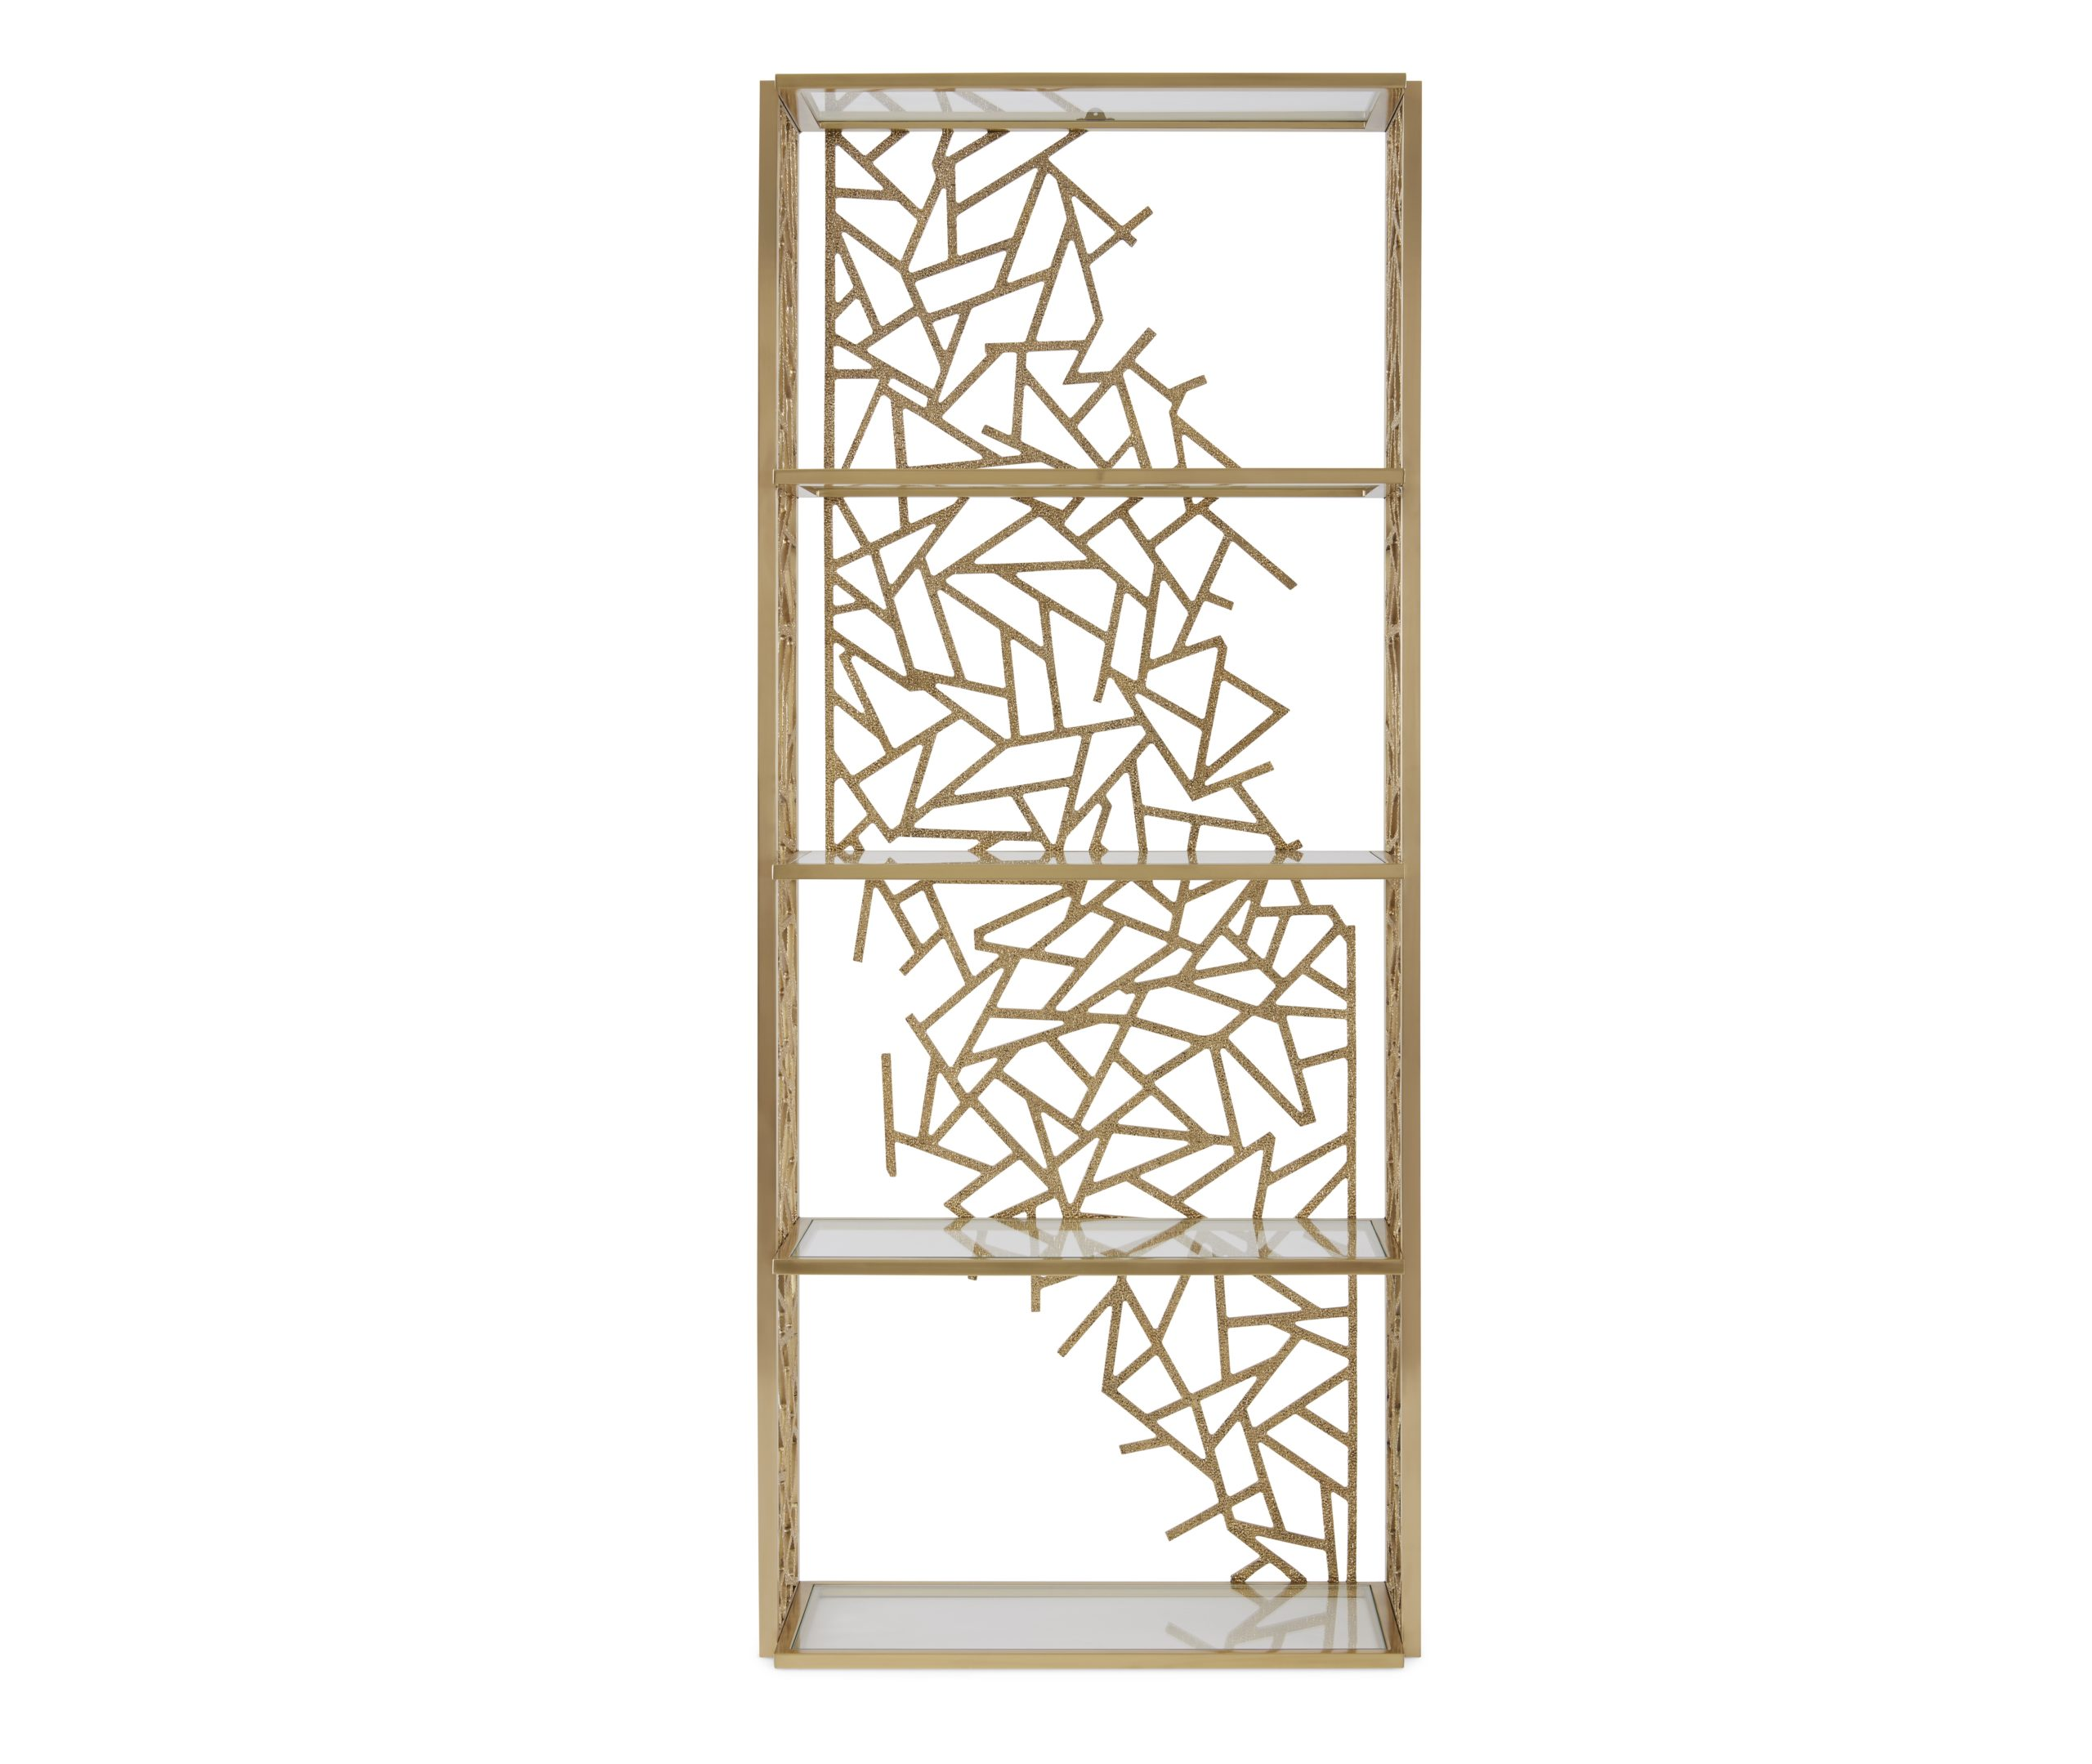 Baker_products_WNWN_infinite_etagere_BAA3295_FRONT-scaled-1